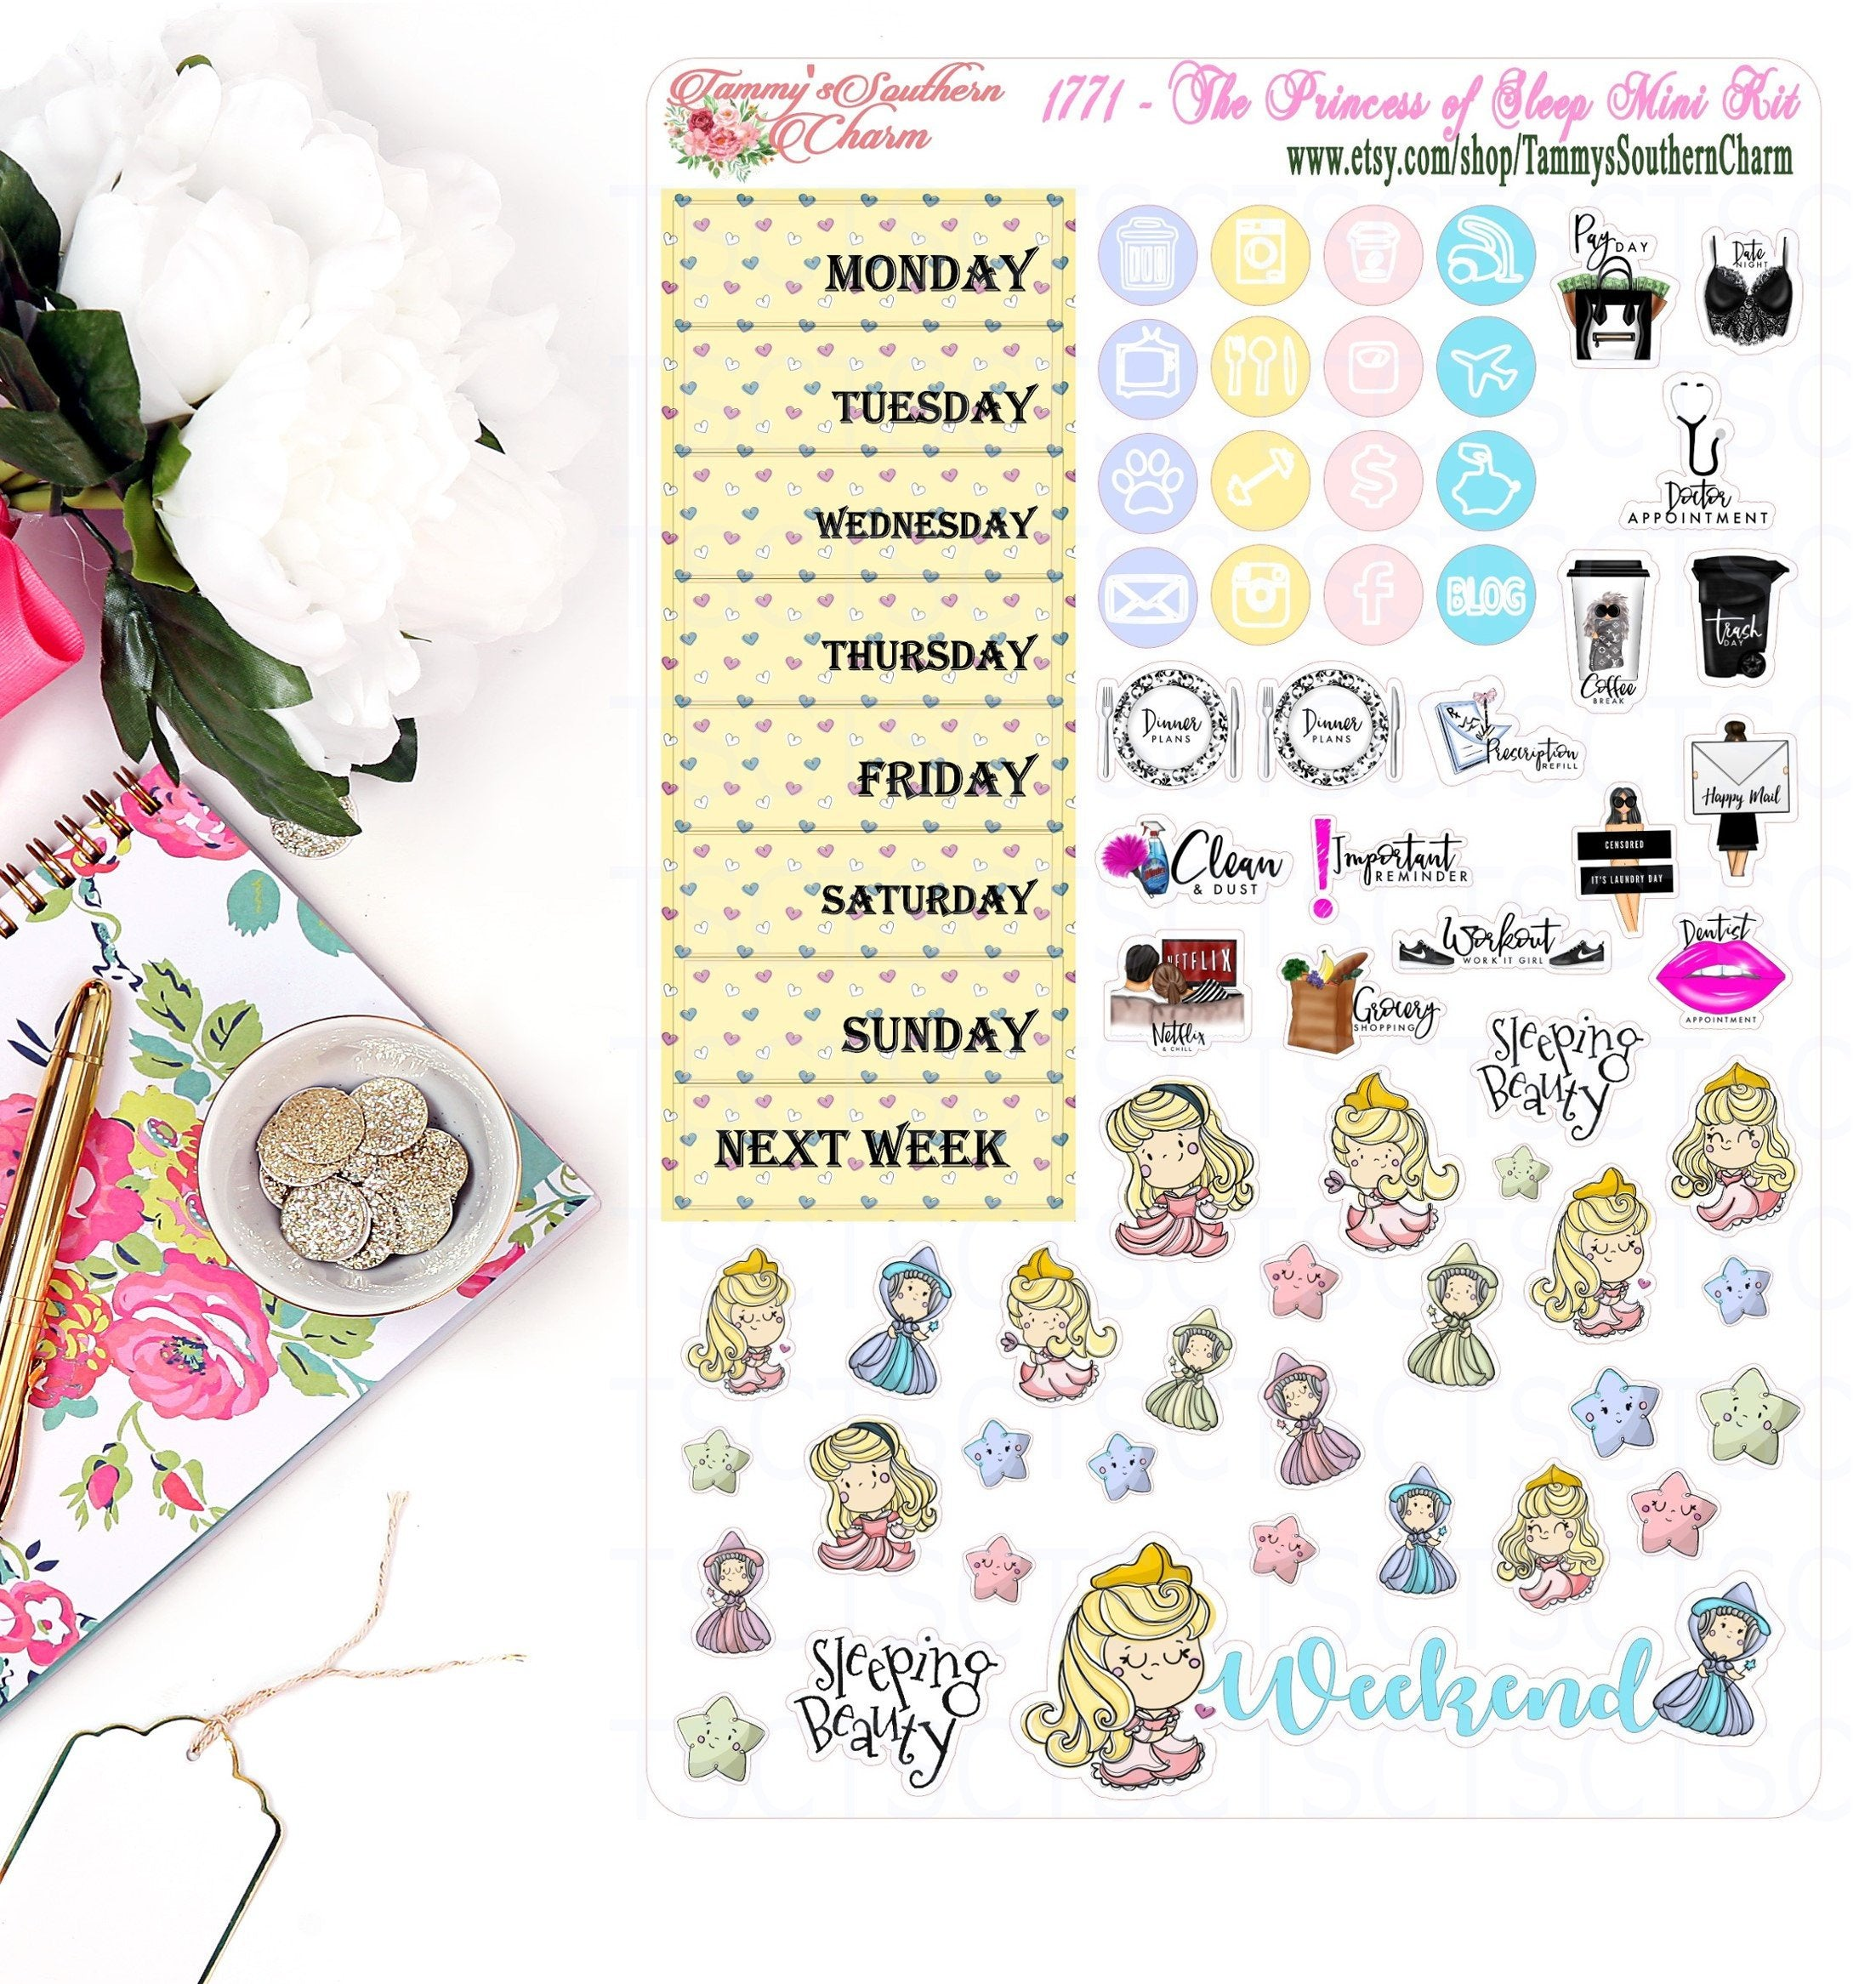 1771 PRINCESS OF SLEEP - Stickers, Planner Stickers, Traveler's nb stickers, Planner Layout, beauty sleep, Princess Stickers